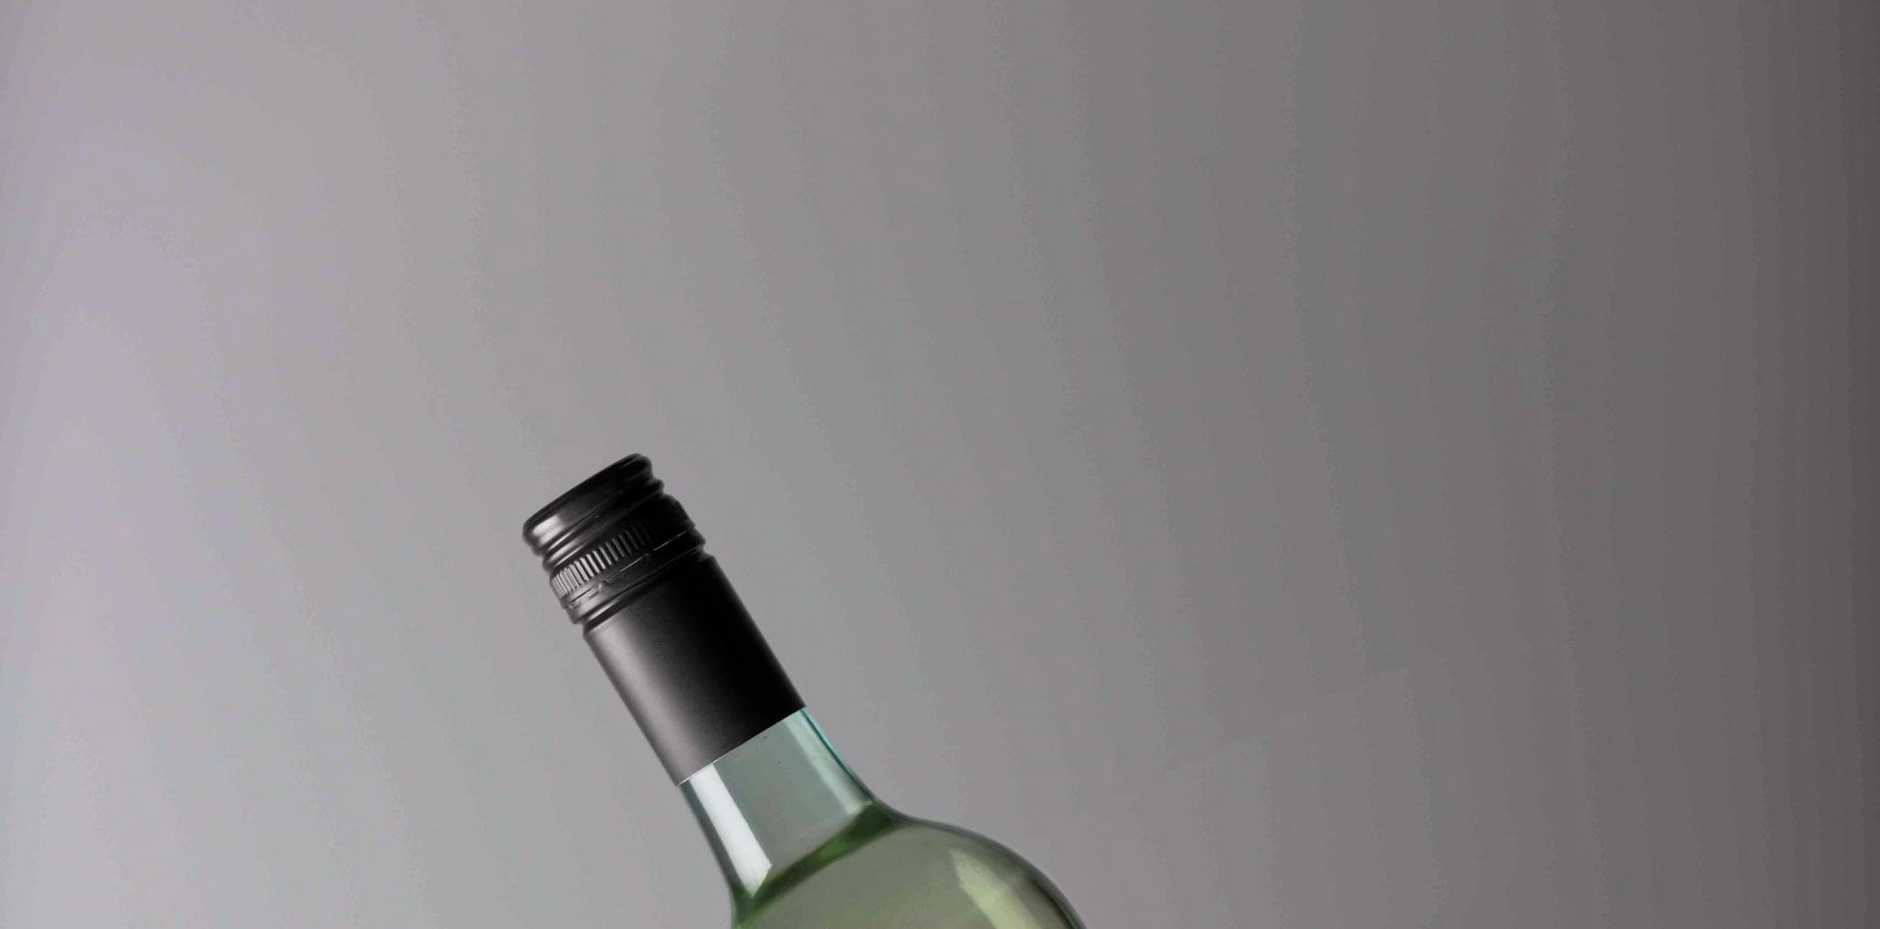 Risky Business King Valley Pinot Grigio (2016, $25): If it's a bit risky spending $25 on a pinot grigio you haven't tried, it might as well be this one. Anyway, what's this review for? Rating: 8.6/10.